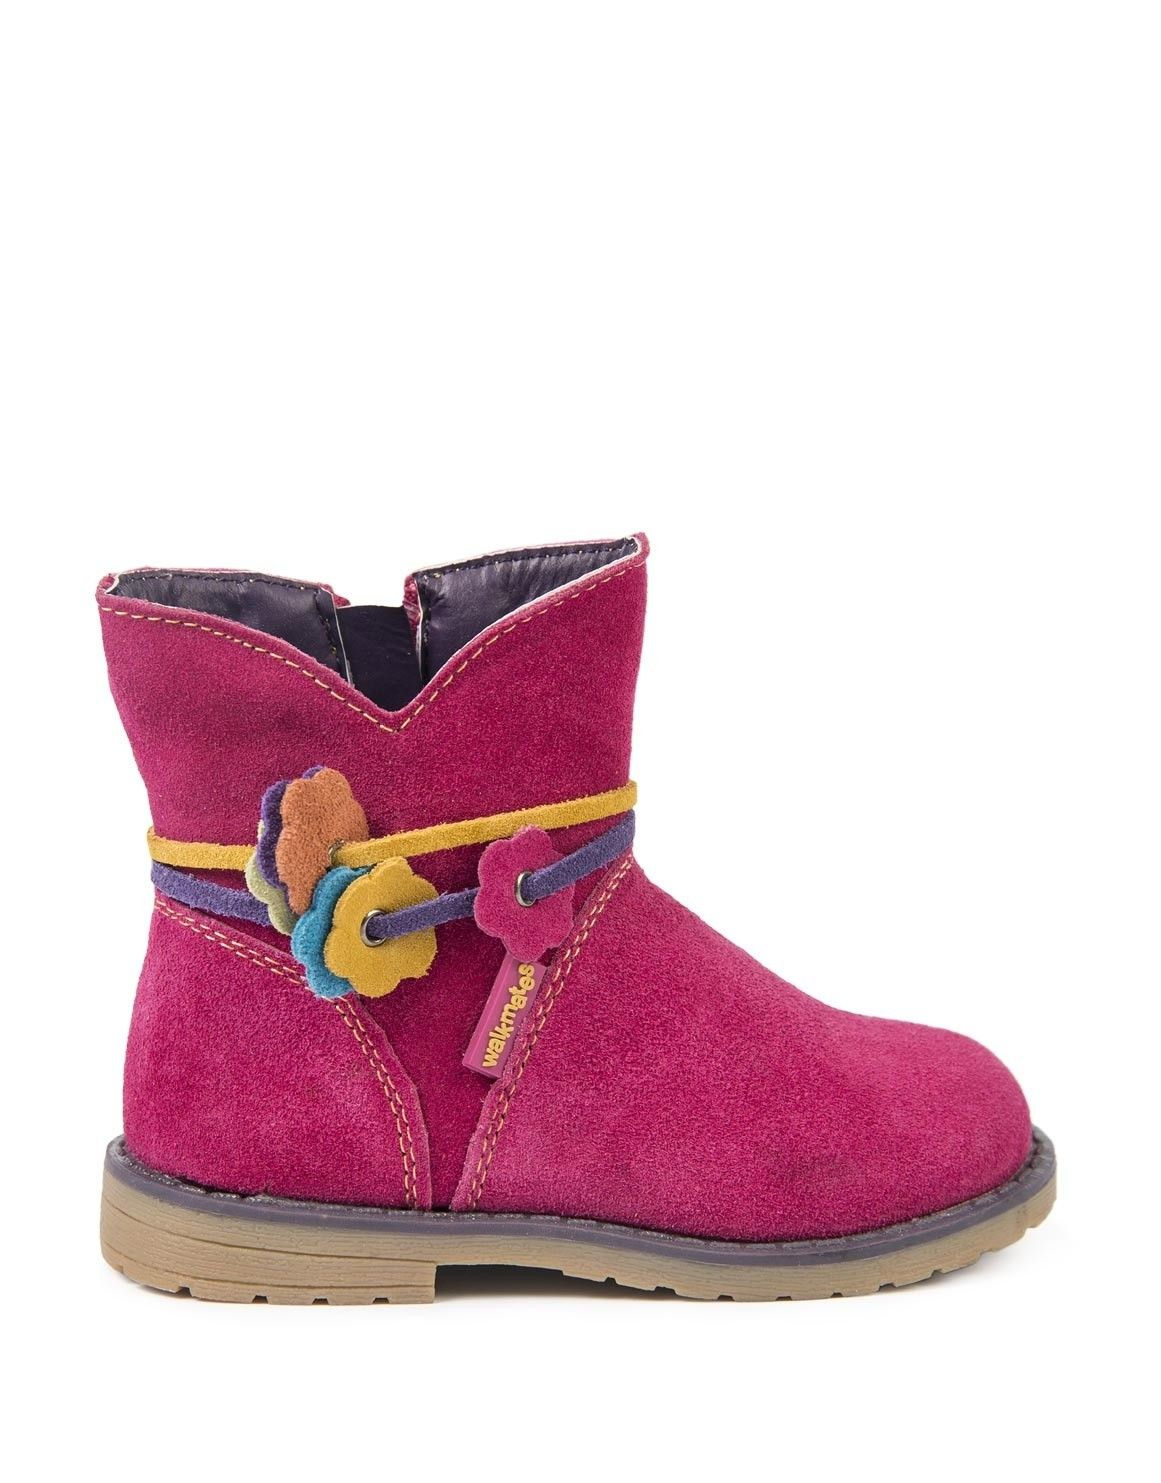 Flower Trim Suede Boots | Boots, Suede